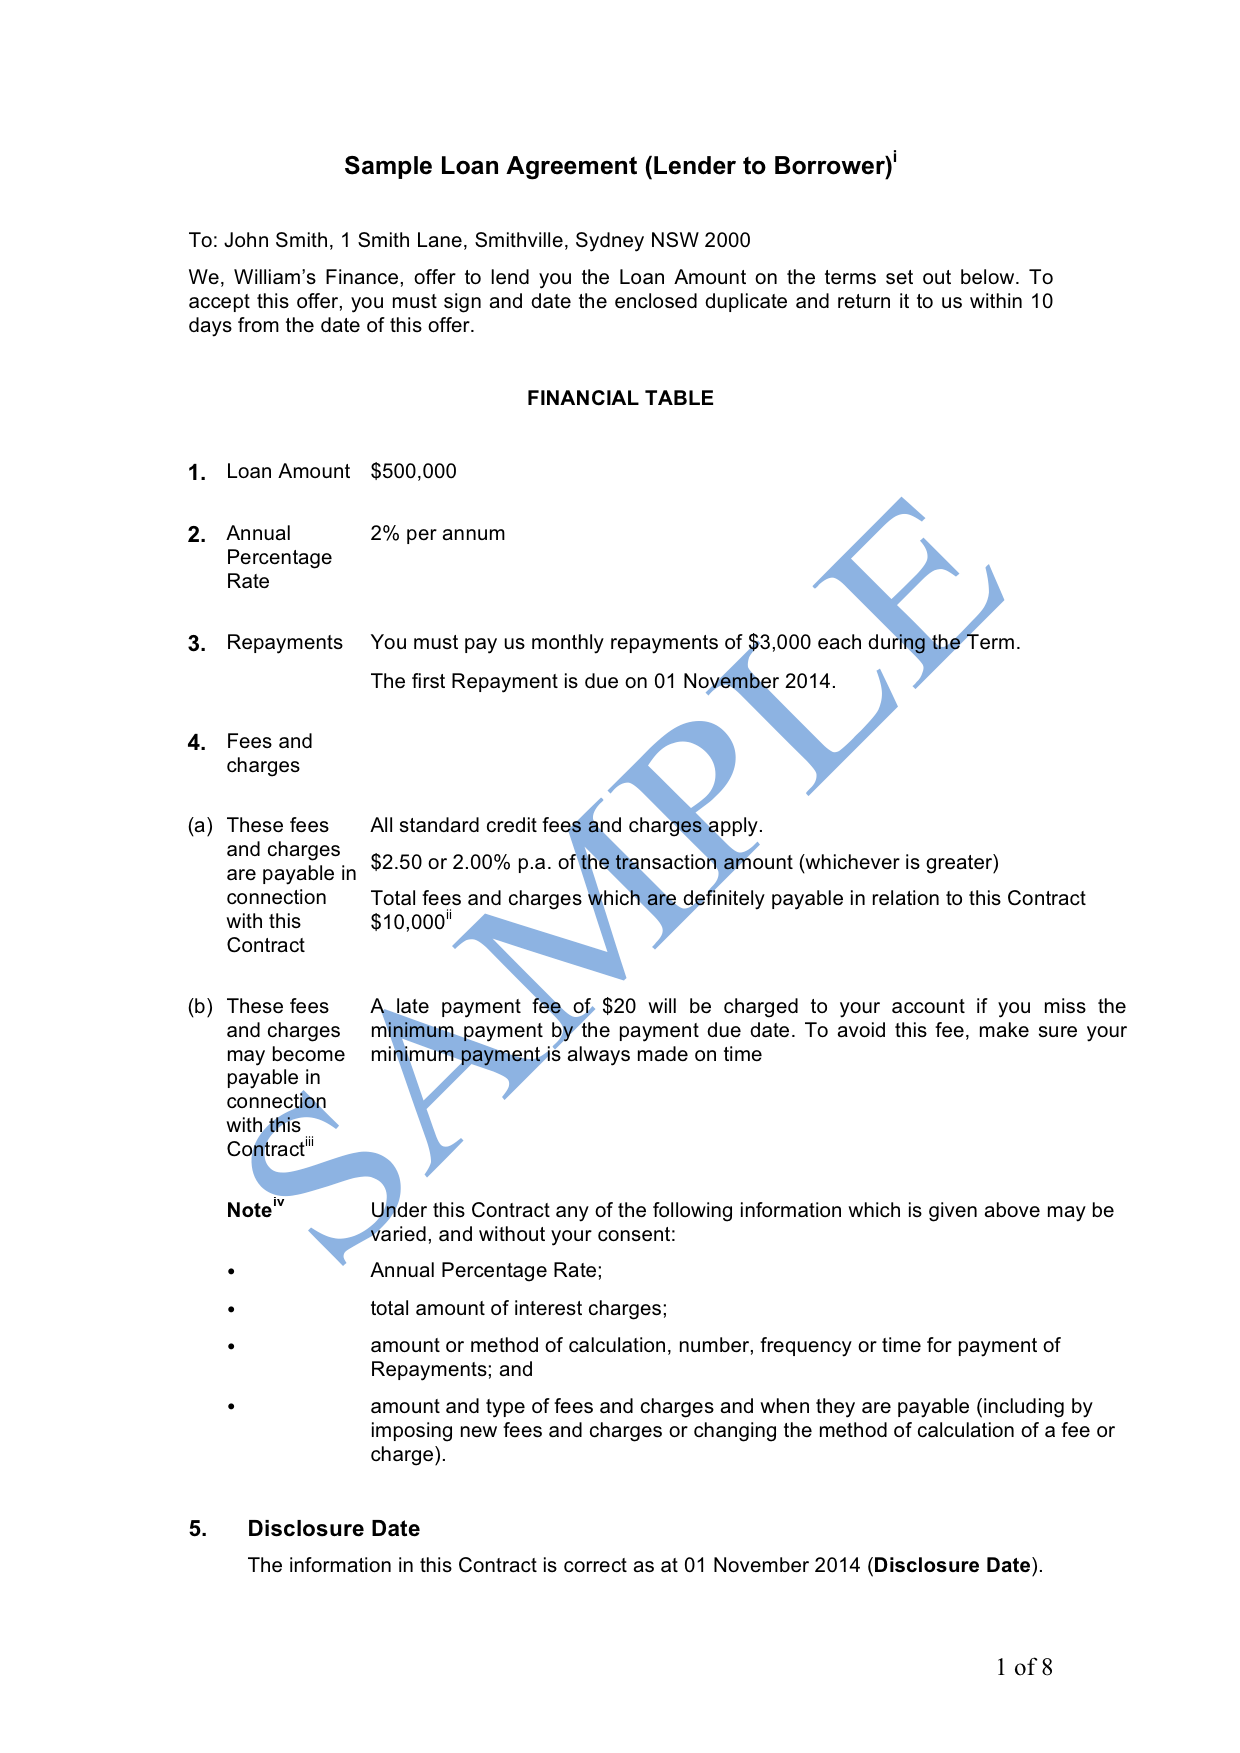 Loan Agreement (Lender to Borrower) Sample LawPath